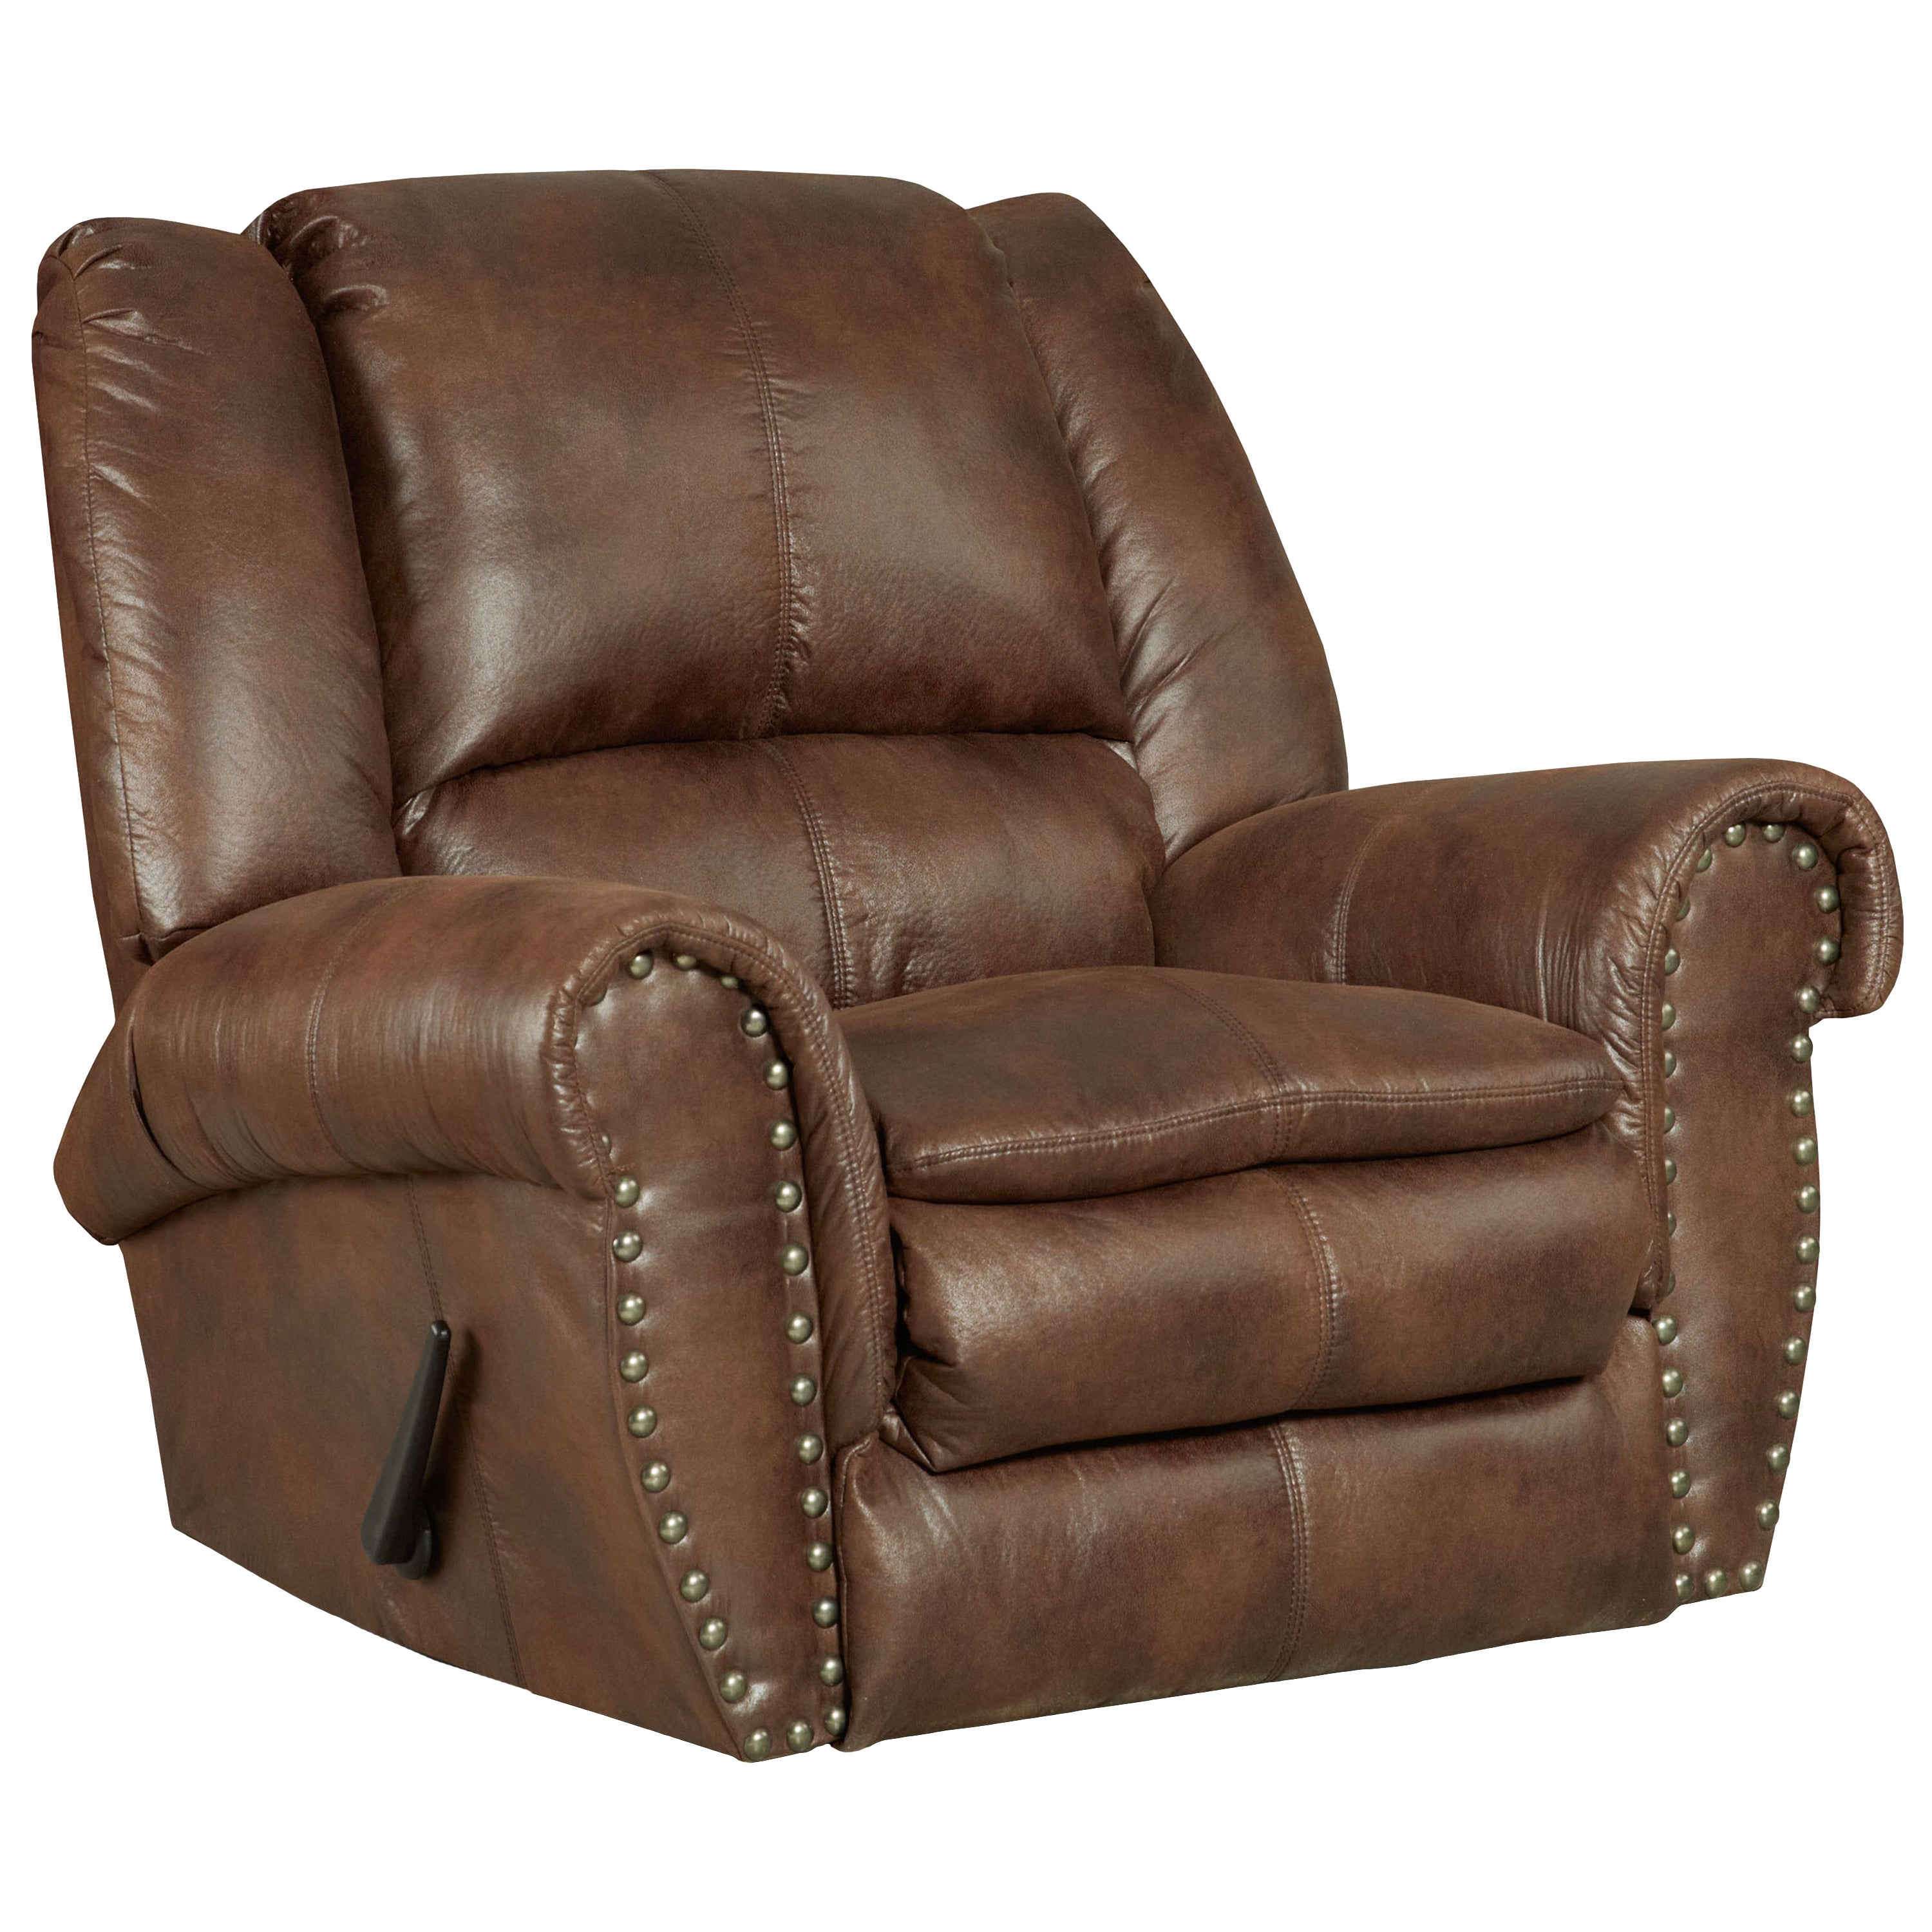 Shop Contemporary Brown Faux Leather Motion Recliner   Free Shipping Today    Overstock.com   10359798